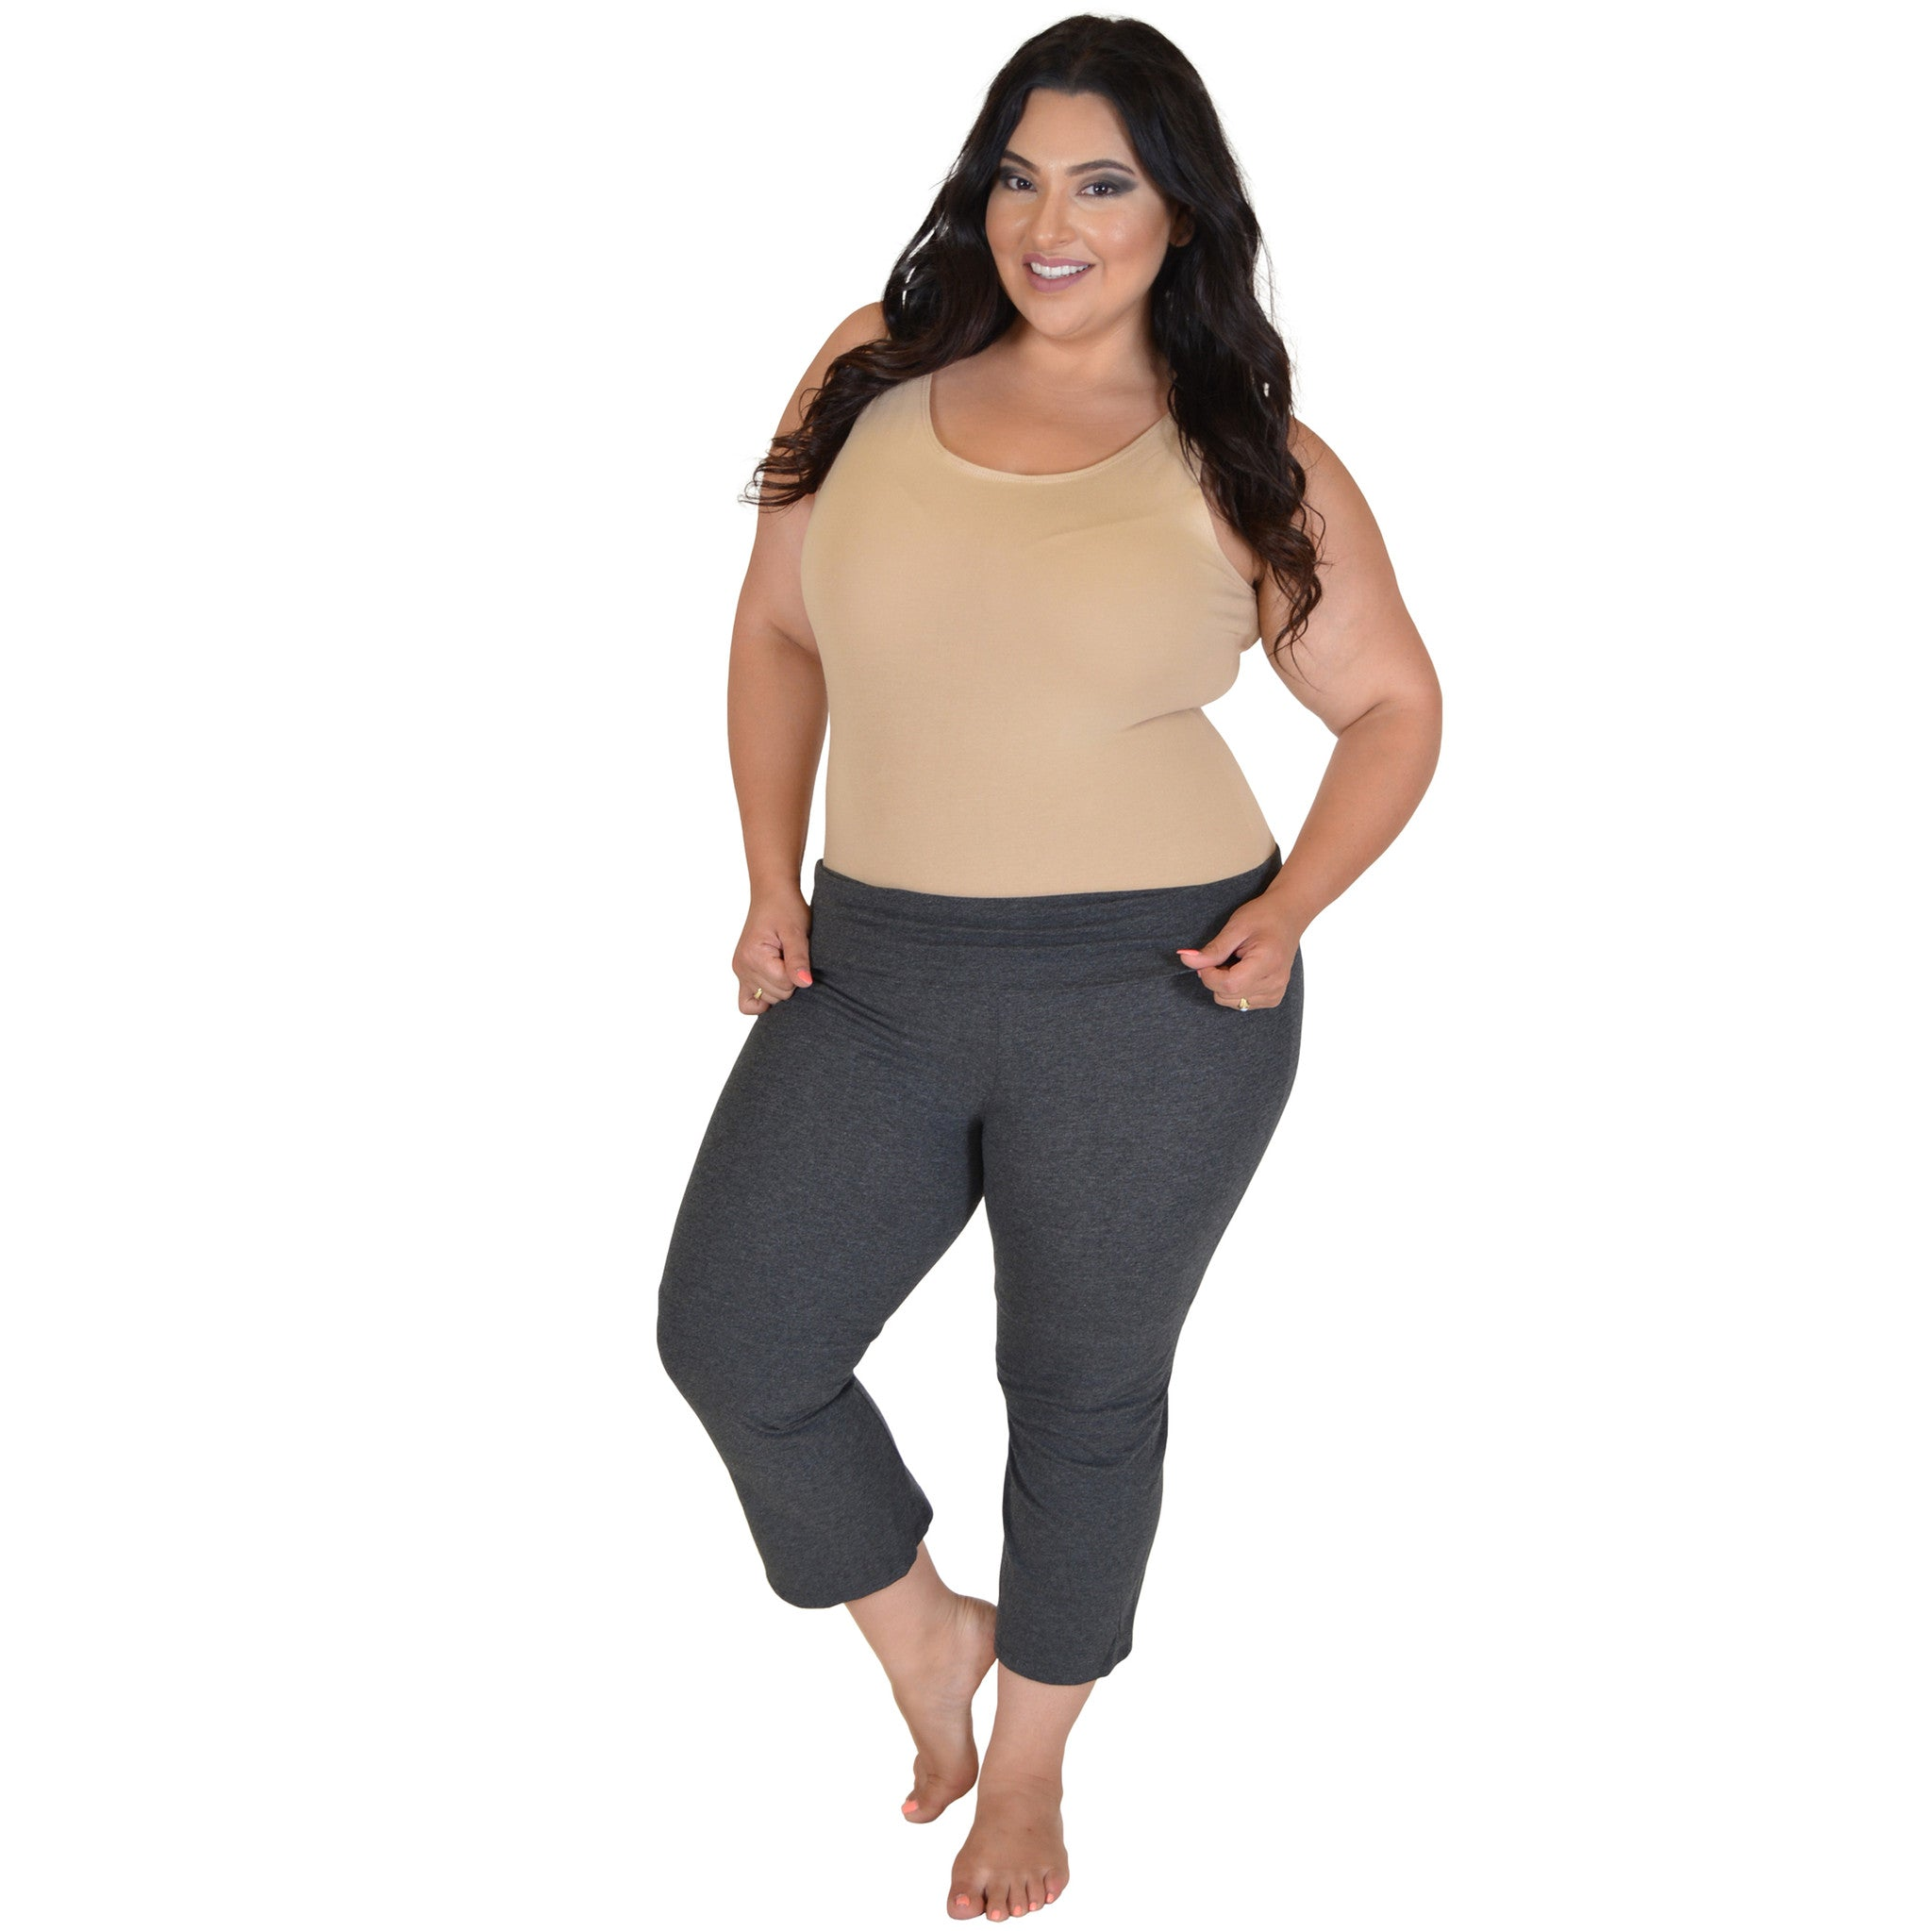 Find great deals on eBay for yoga pants plus size. Shop with confidence.